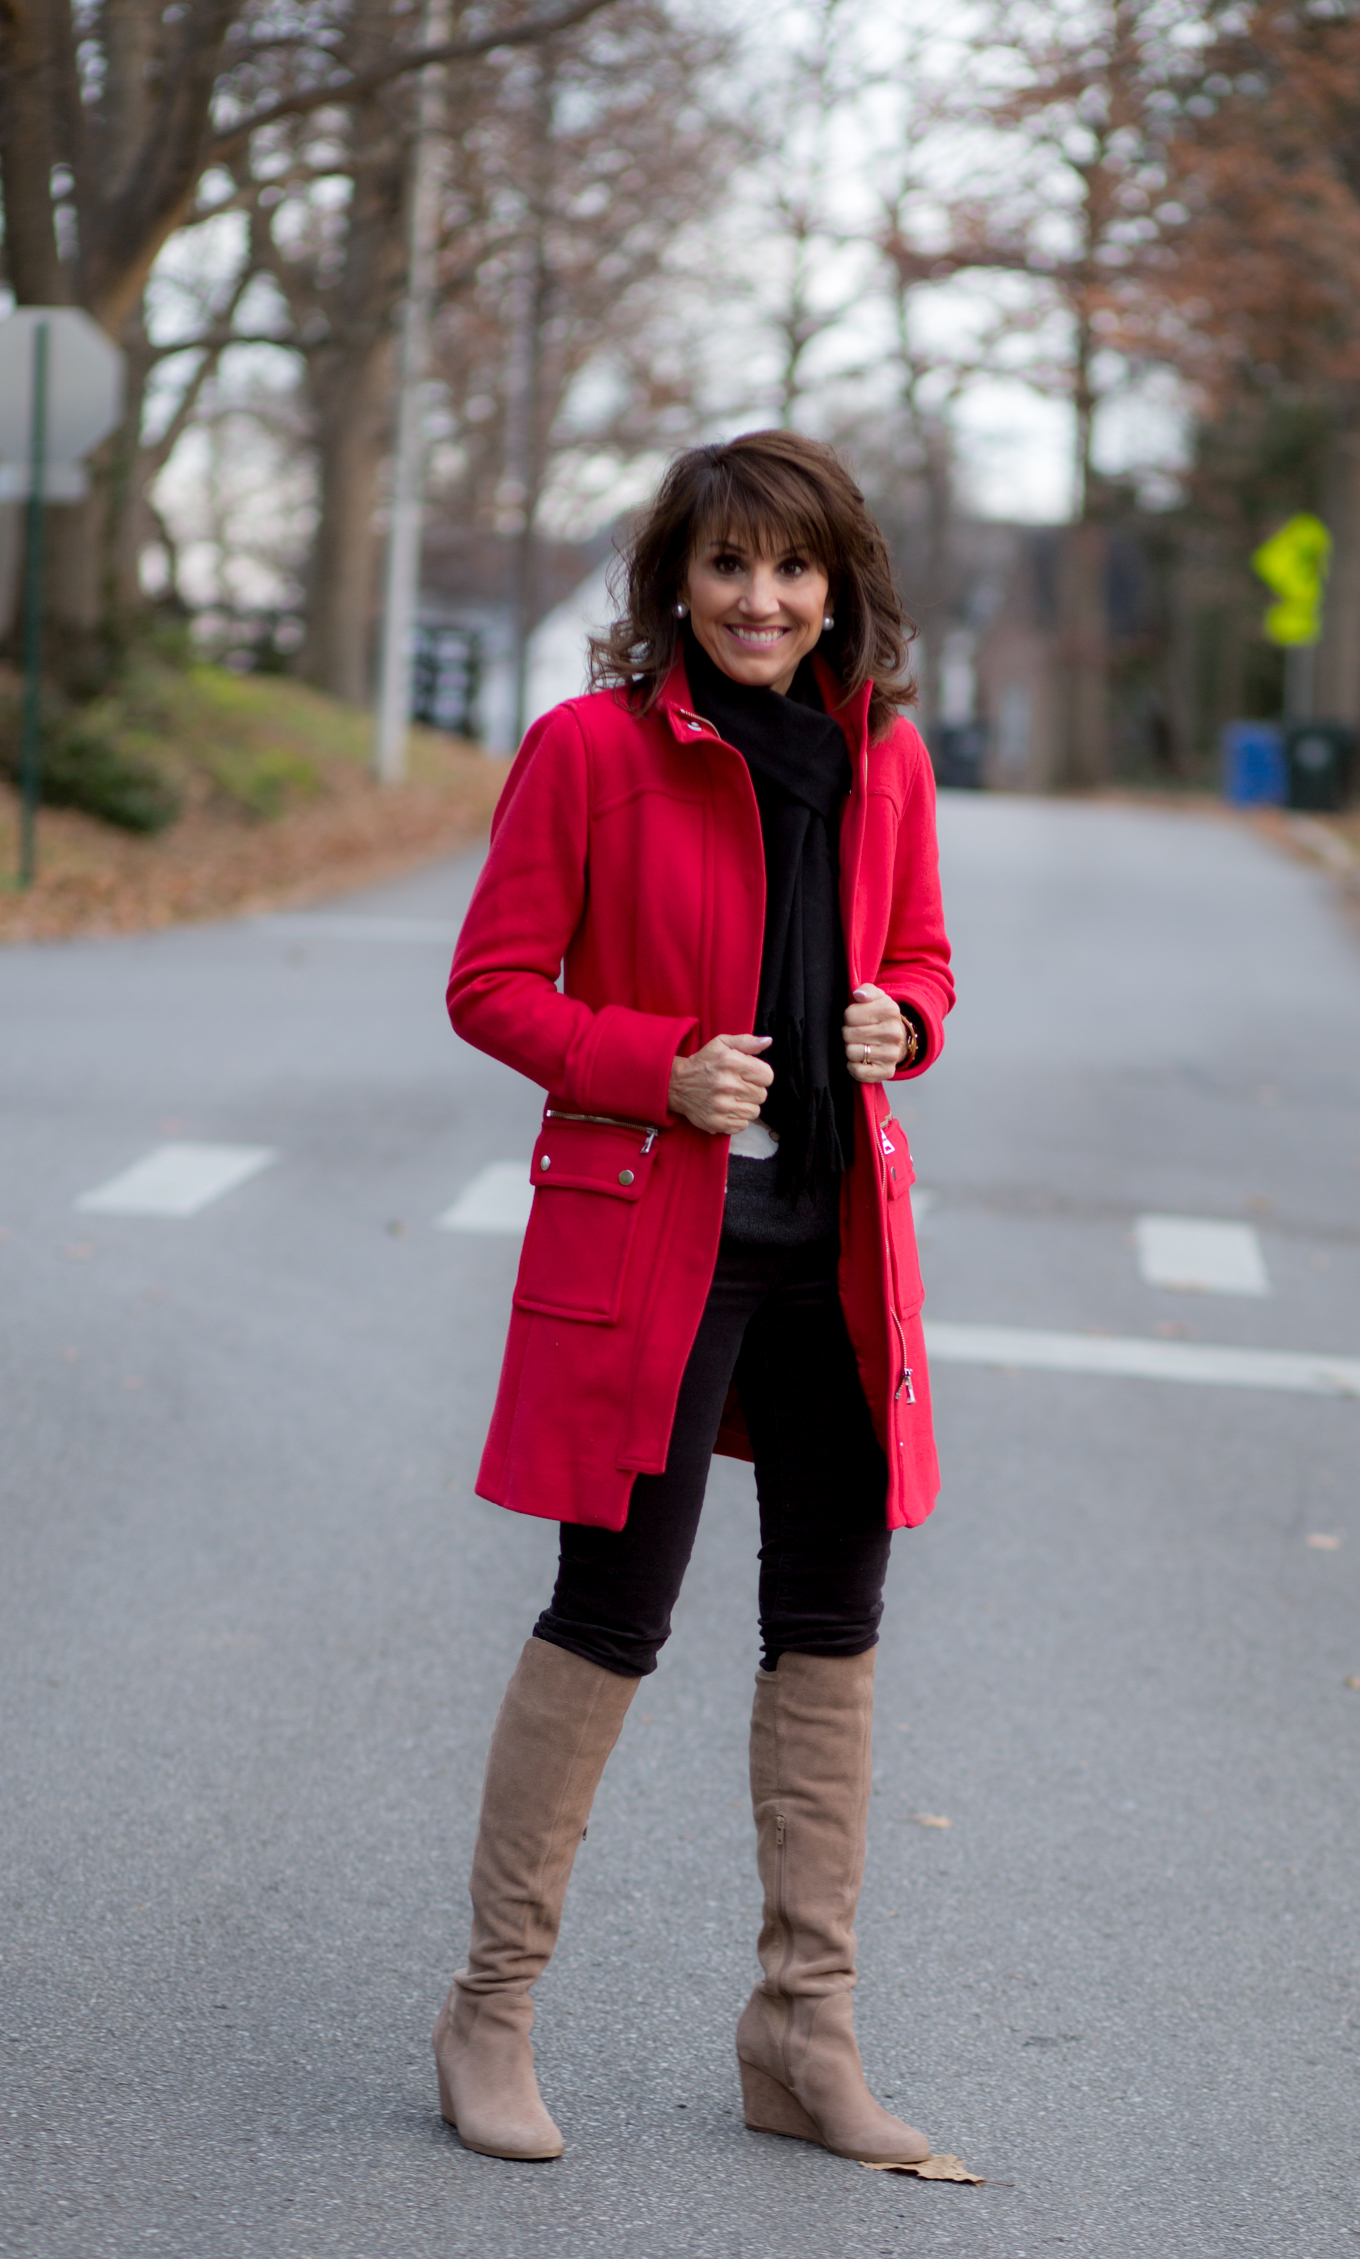 25 Days of Winter Fashion: Reindeer Sweater + Corduroy Pants + Red Coat